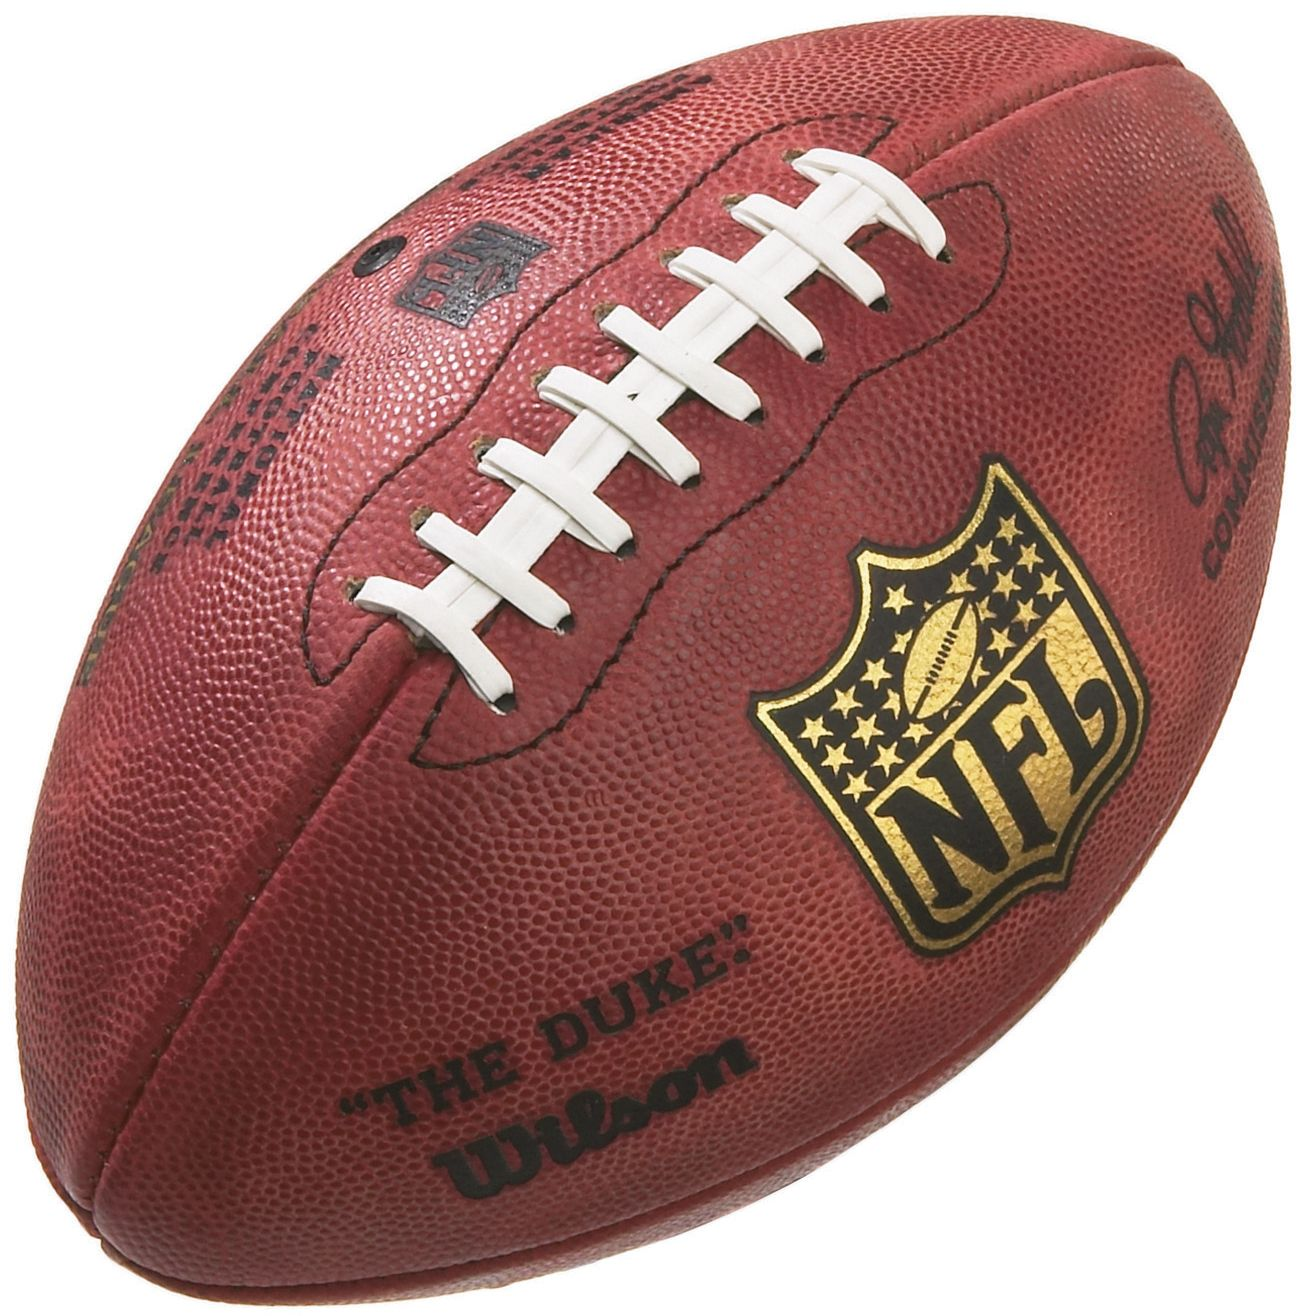 Wilson NFL quot;The Dukequot; Official Football  DICKS Sporting Goods